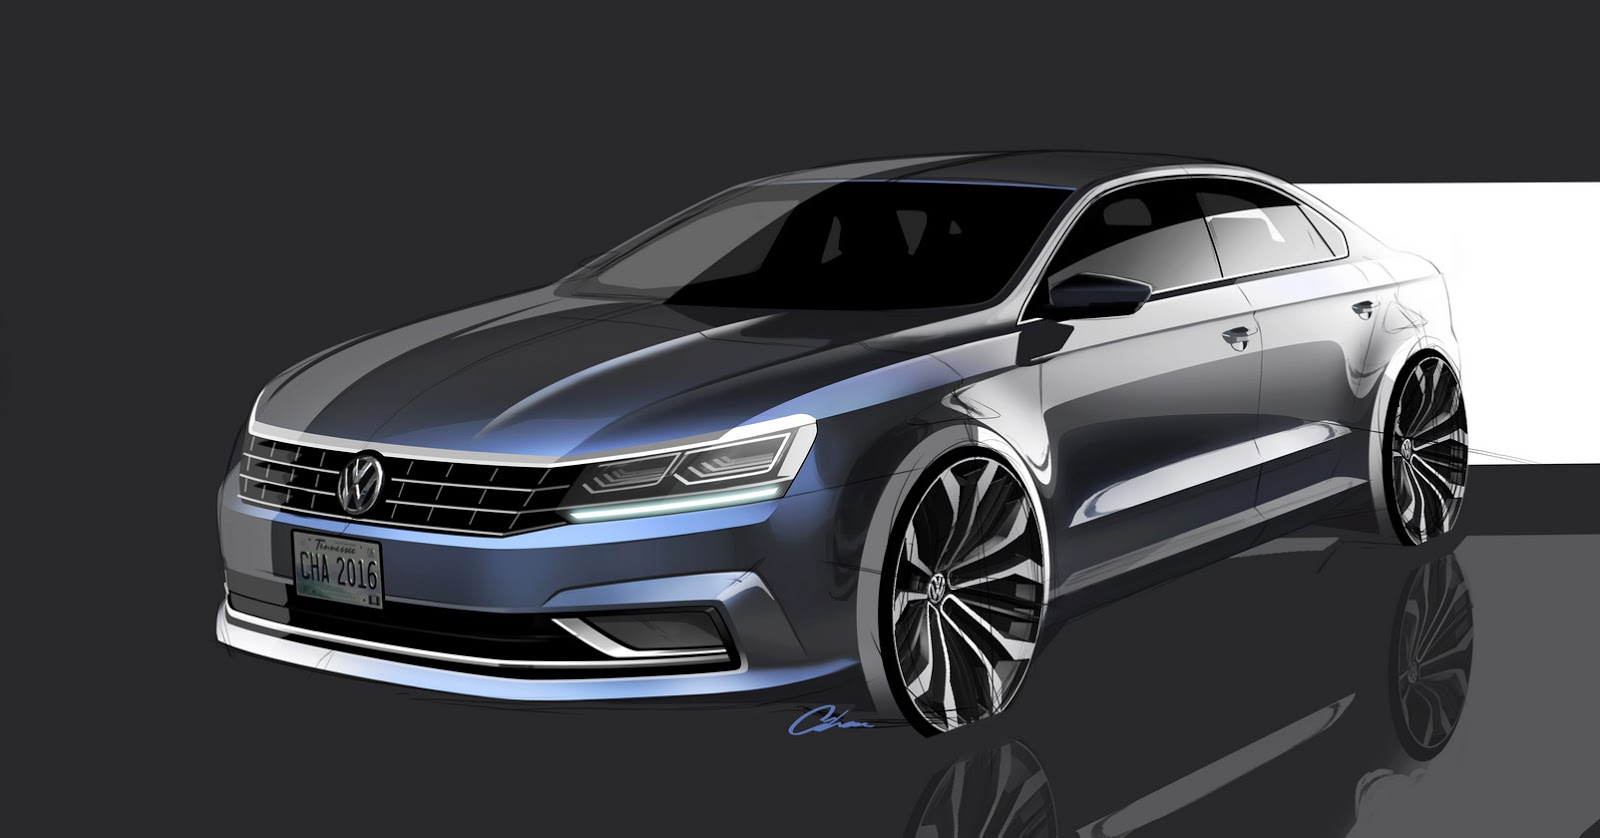 2016 Vw Passat Is Not The Major Facelift We Were Expecting Carscoops Com